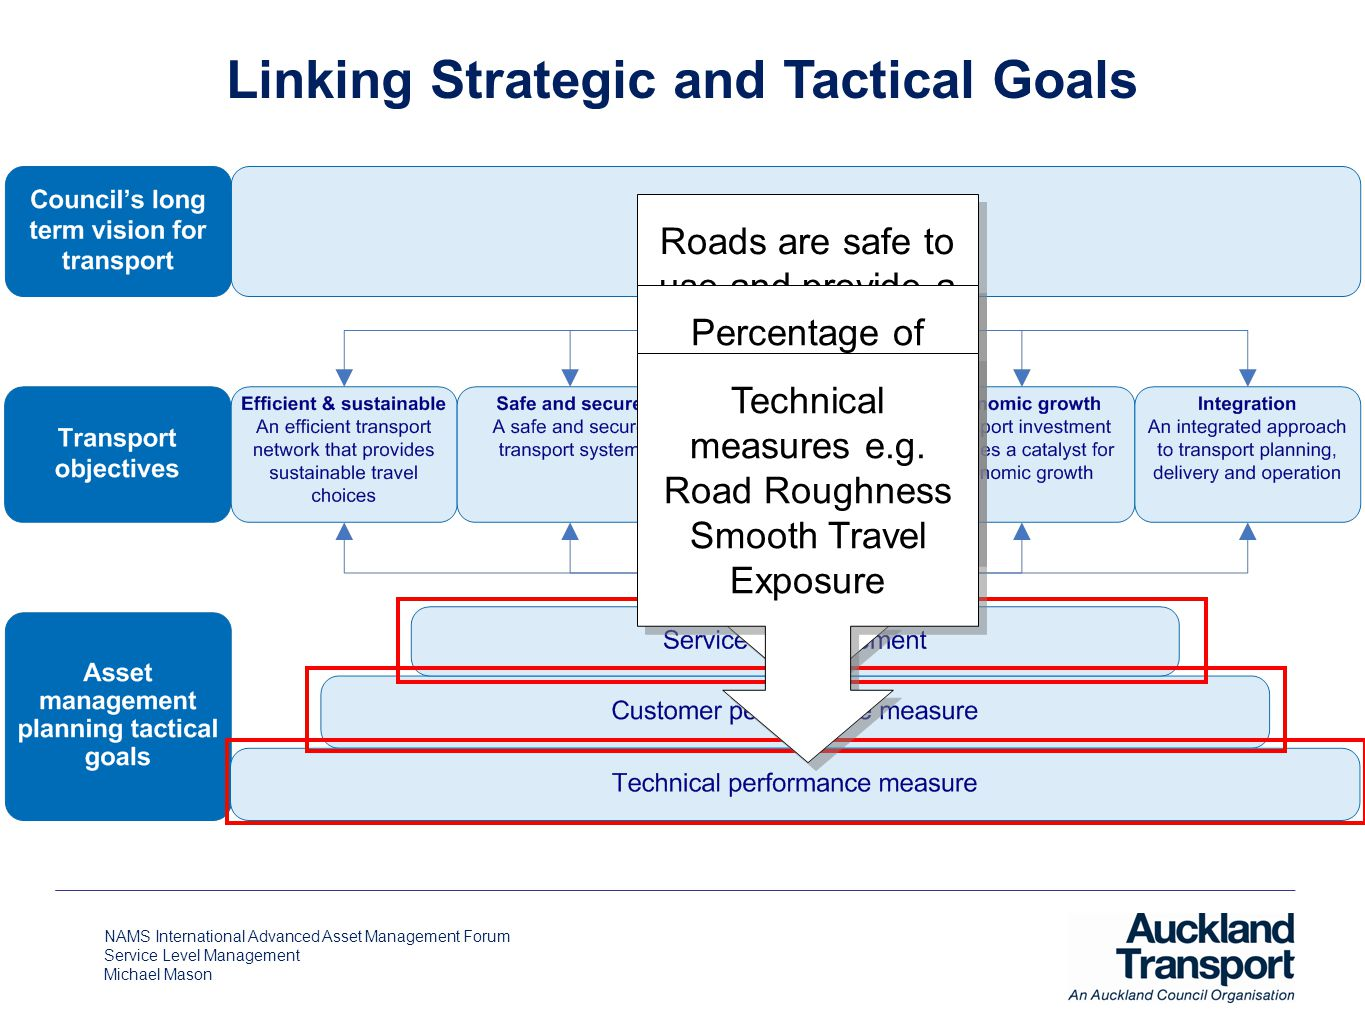 NAMS International Advanced Asset Management Forum Service Level Management Michael Mason Linking Strategic and Tactical Goals Roads are safe to use a